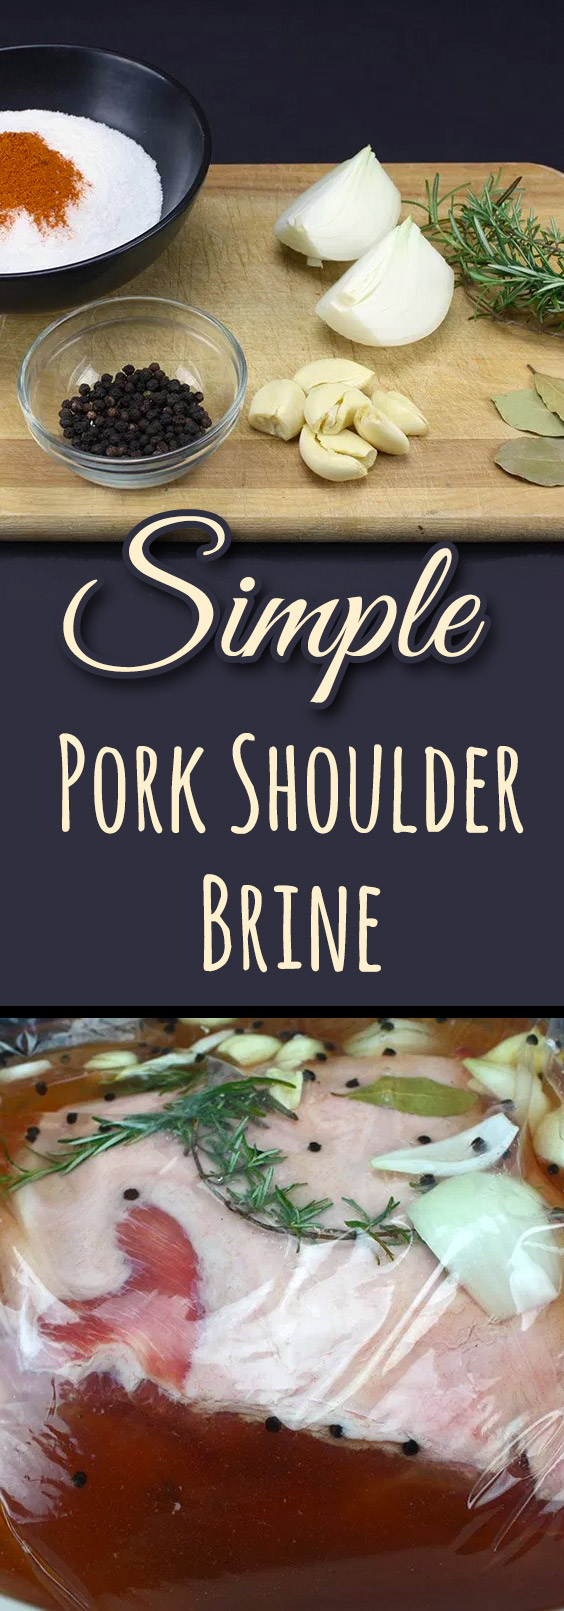 Simple Pork Shoulder Brine - Using a brine makes your pork butt extra tender and juicy, every time!